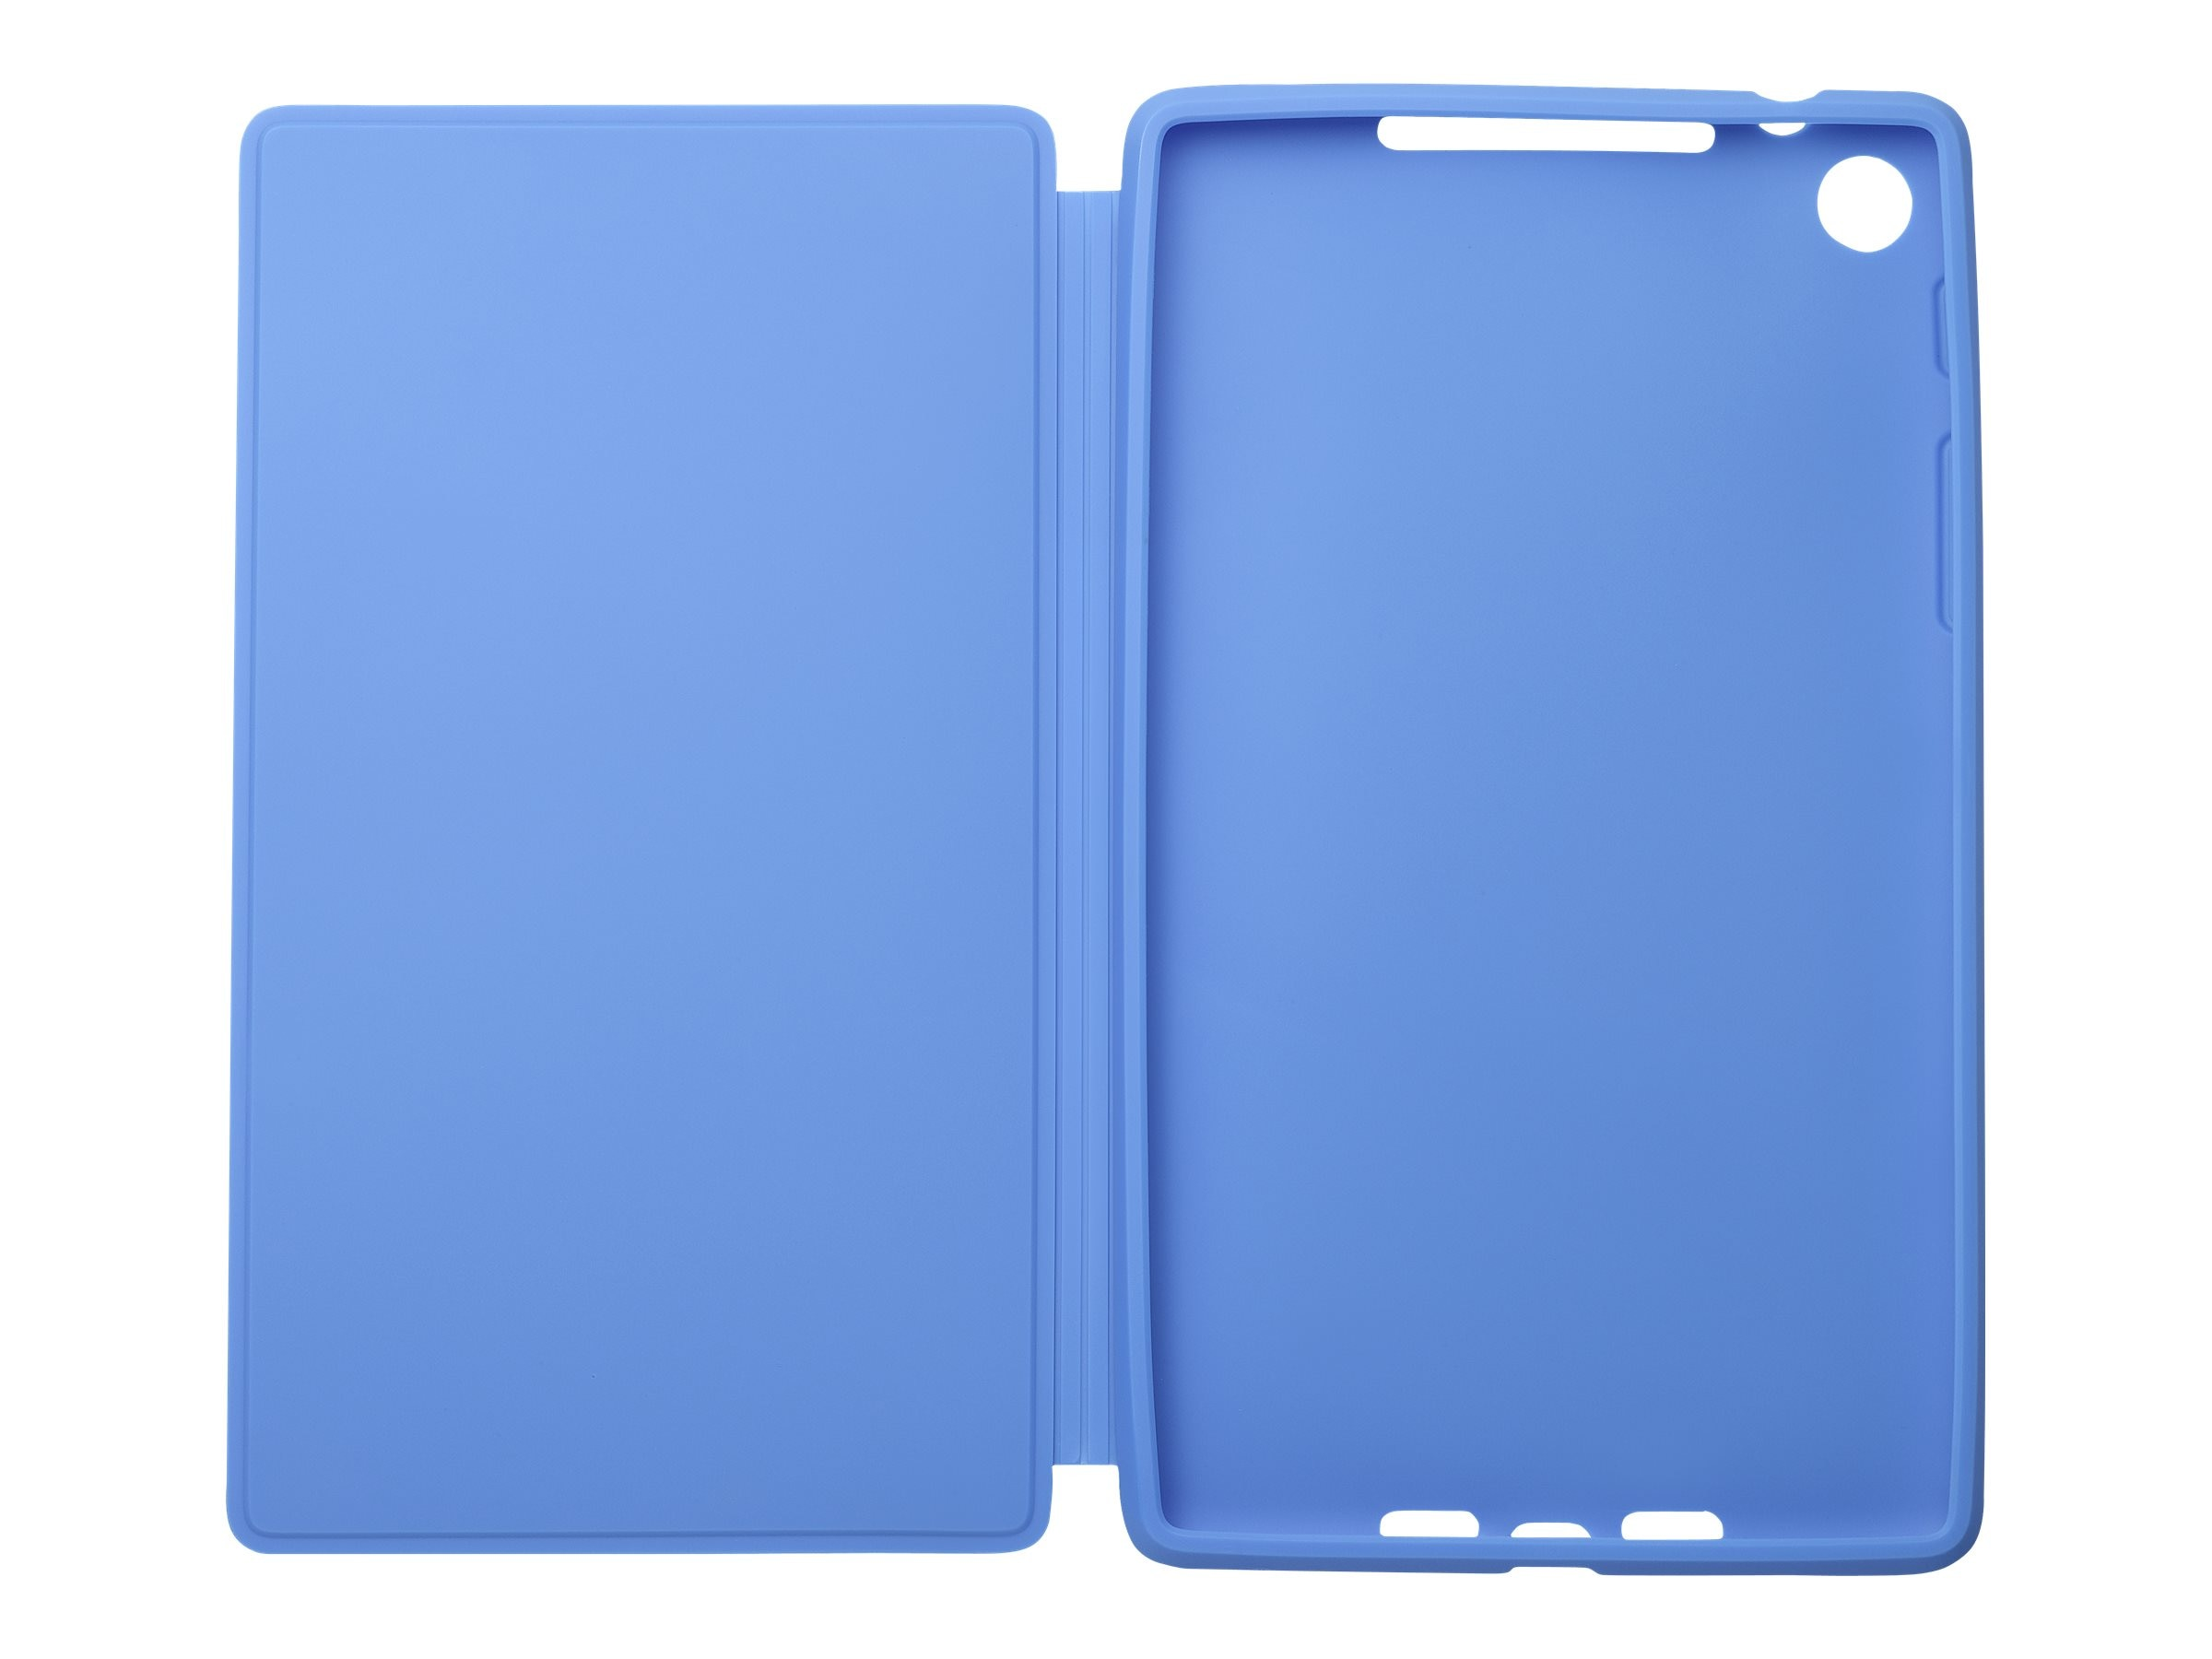 Asus Travel Cover for 2013 Nexus 7, Light Blue, 90-XB3TOKSL001N0-, 18011621, Carrying Cases - Tablets & eReaders